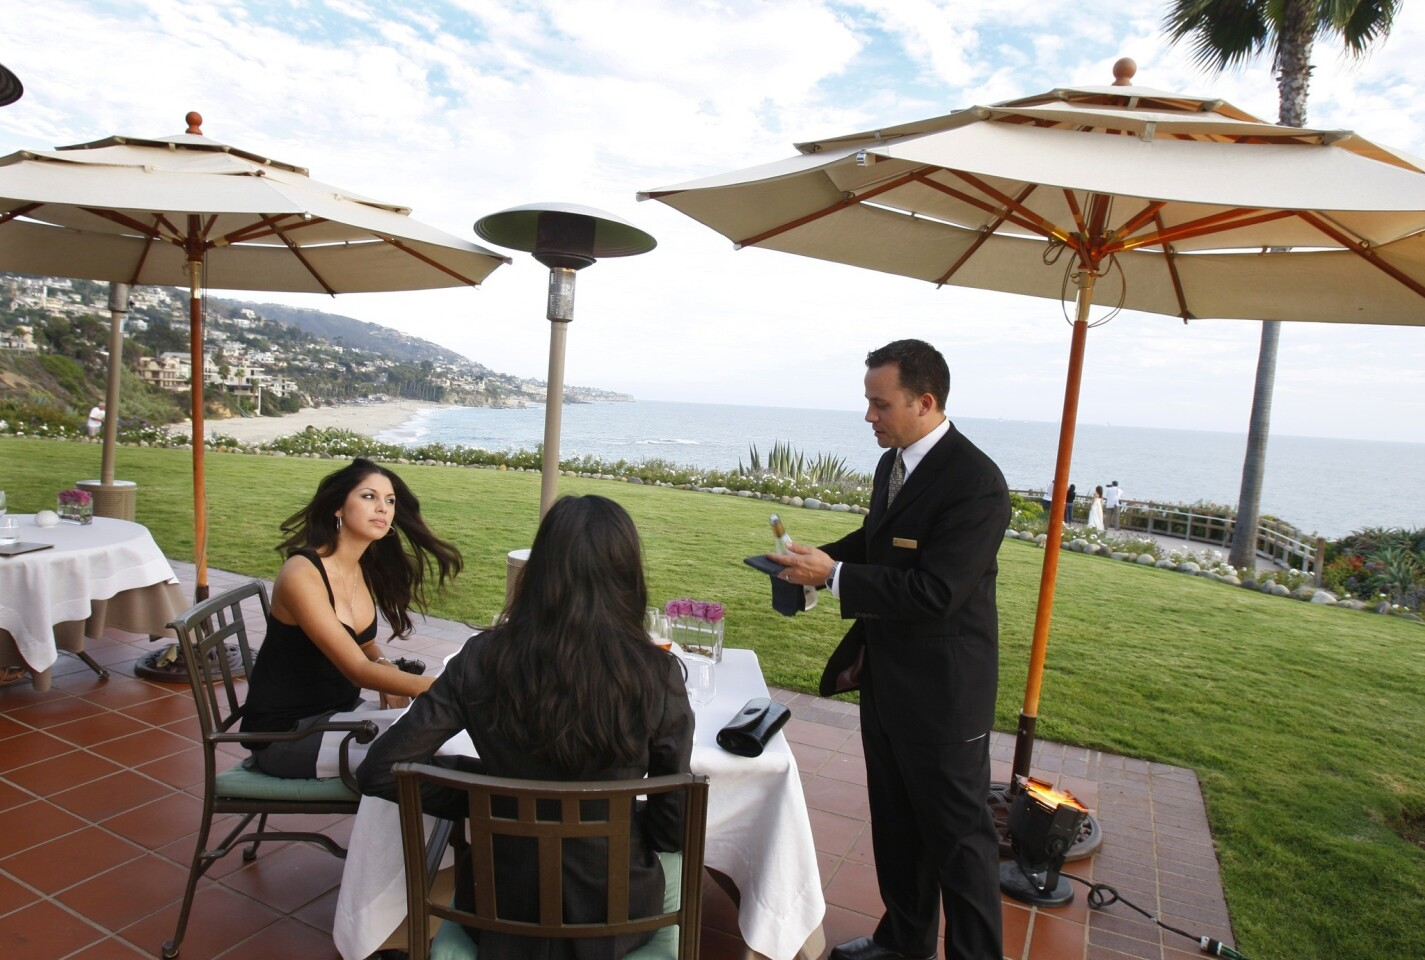 For seaside romance, Studio restaurant at the Montage Resort in Laguna Beach is steps from the waves.